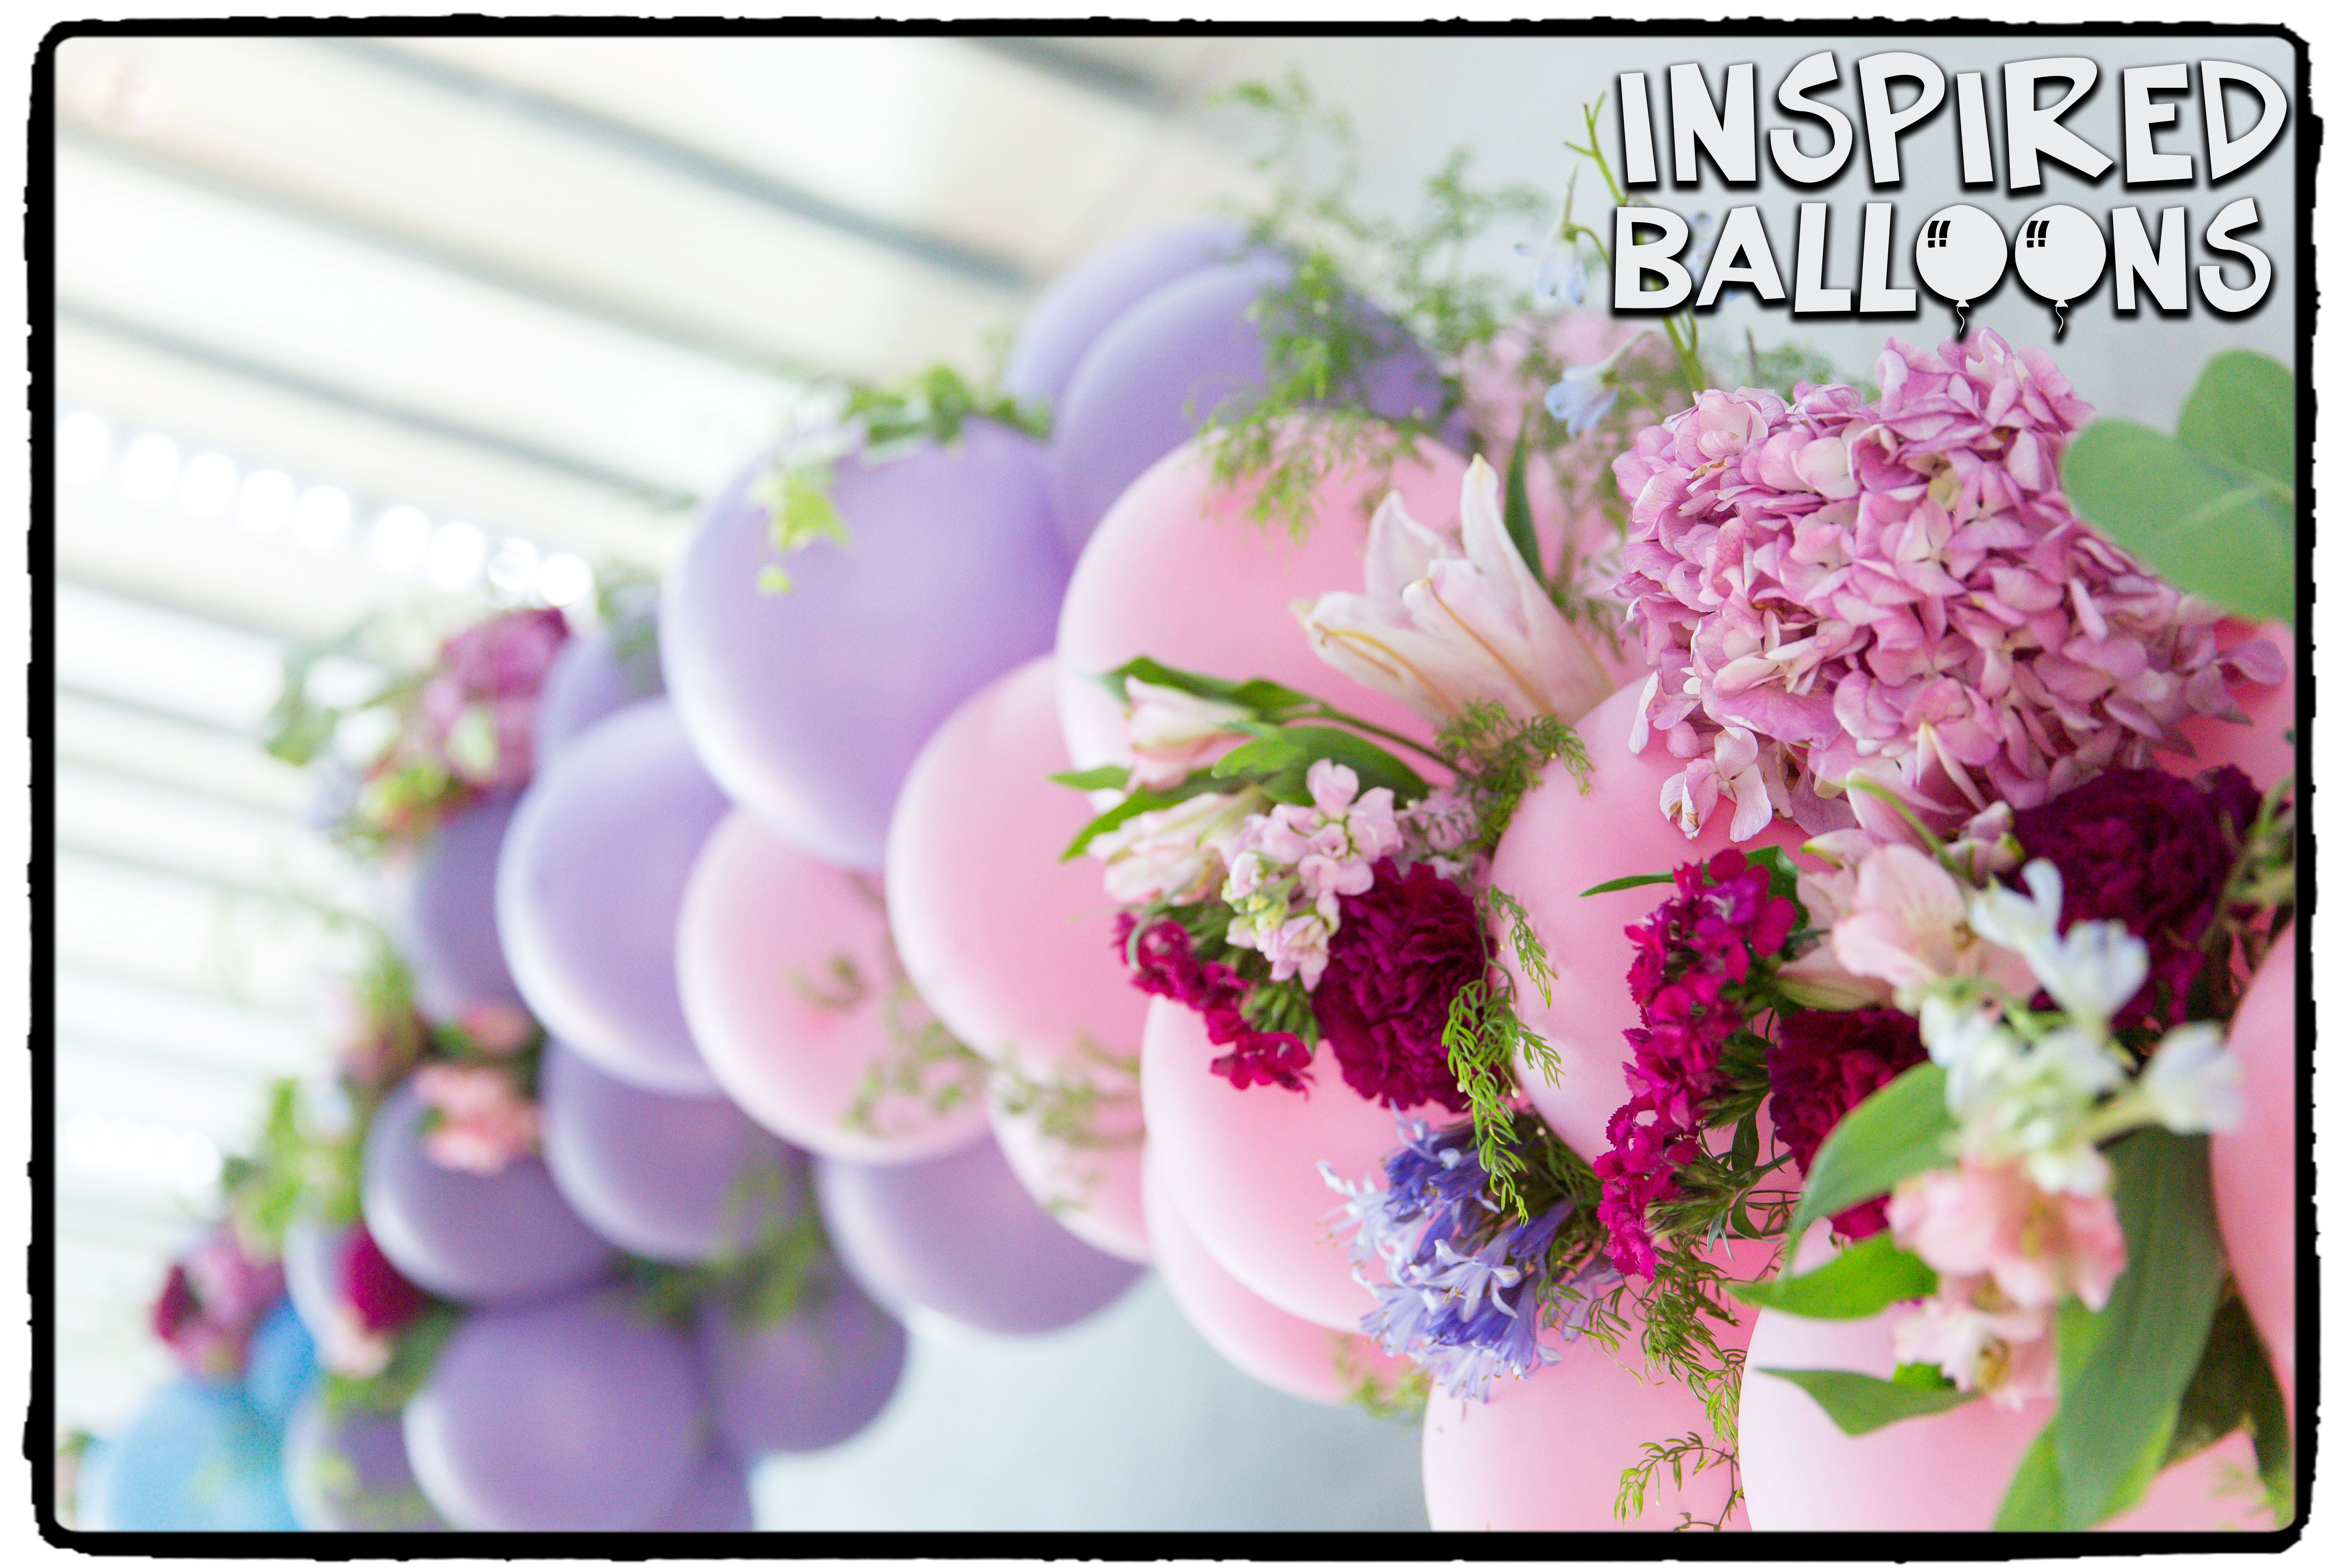 Balloons & Flowers2